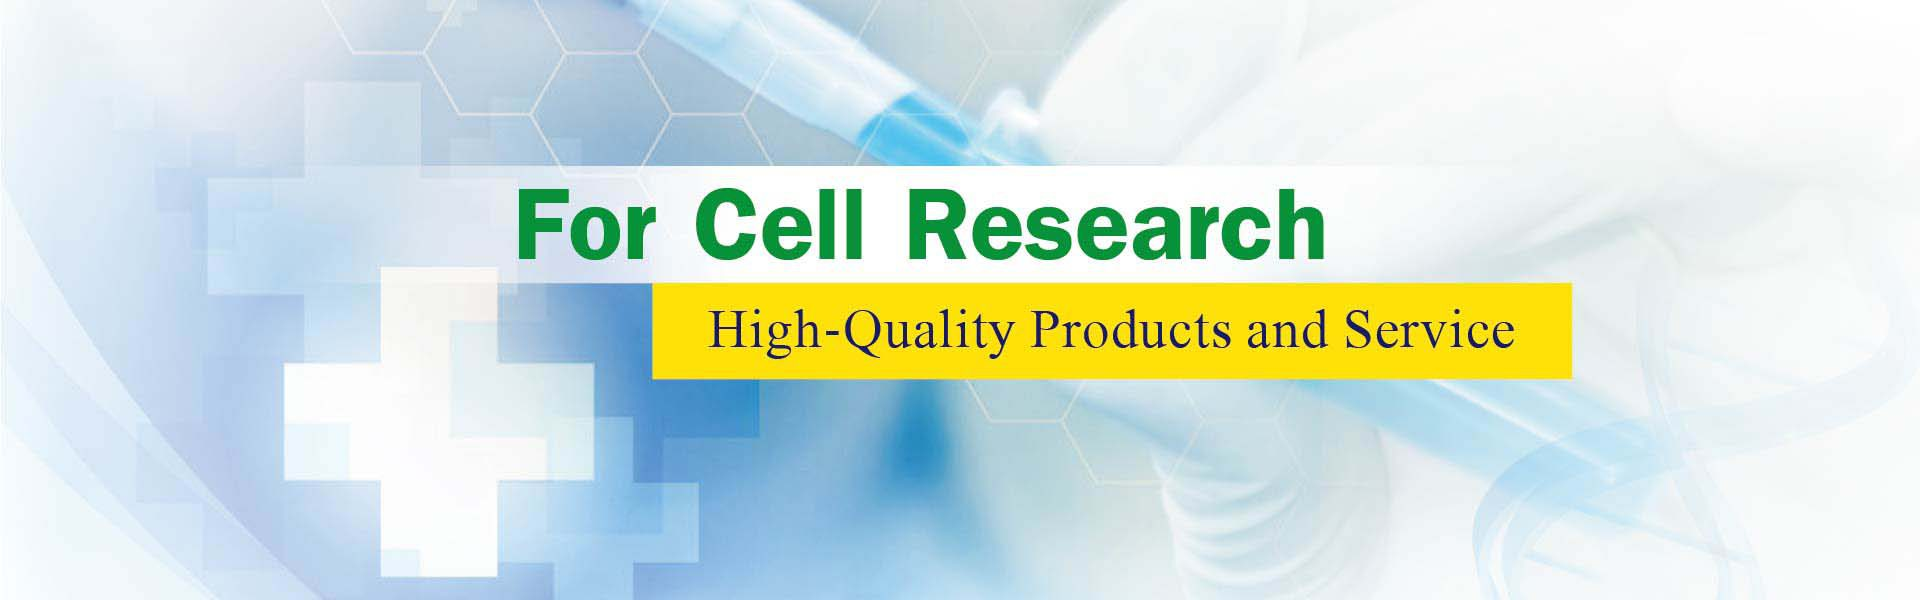 AcceGen high-quality products and service for cell research, authenticated and well-characterized cancer-derived cell line product list.